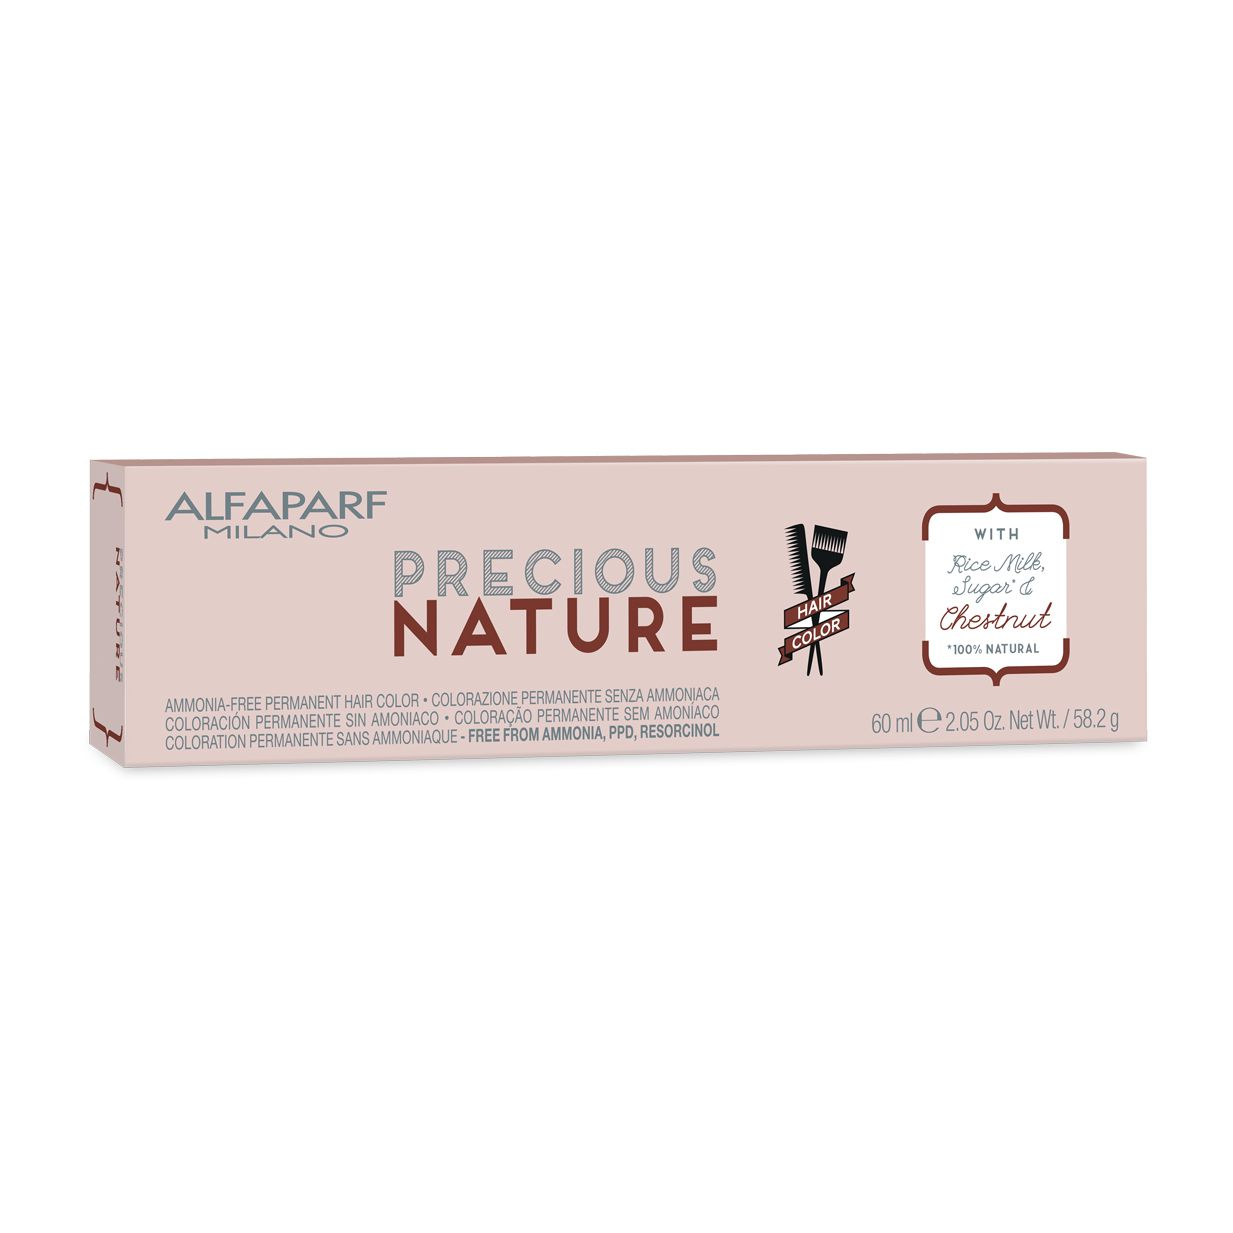 Alfaparf Milano Precious Nature Hair Color Natural Creme de Coloração 5 Castanho Claro 60ml